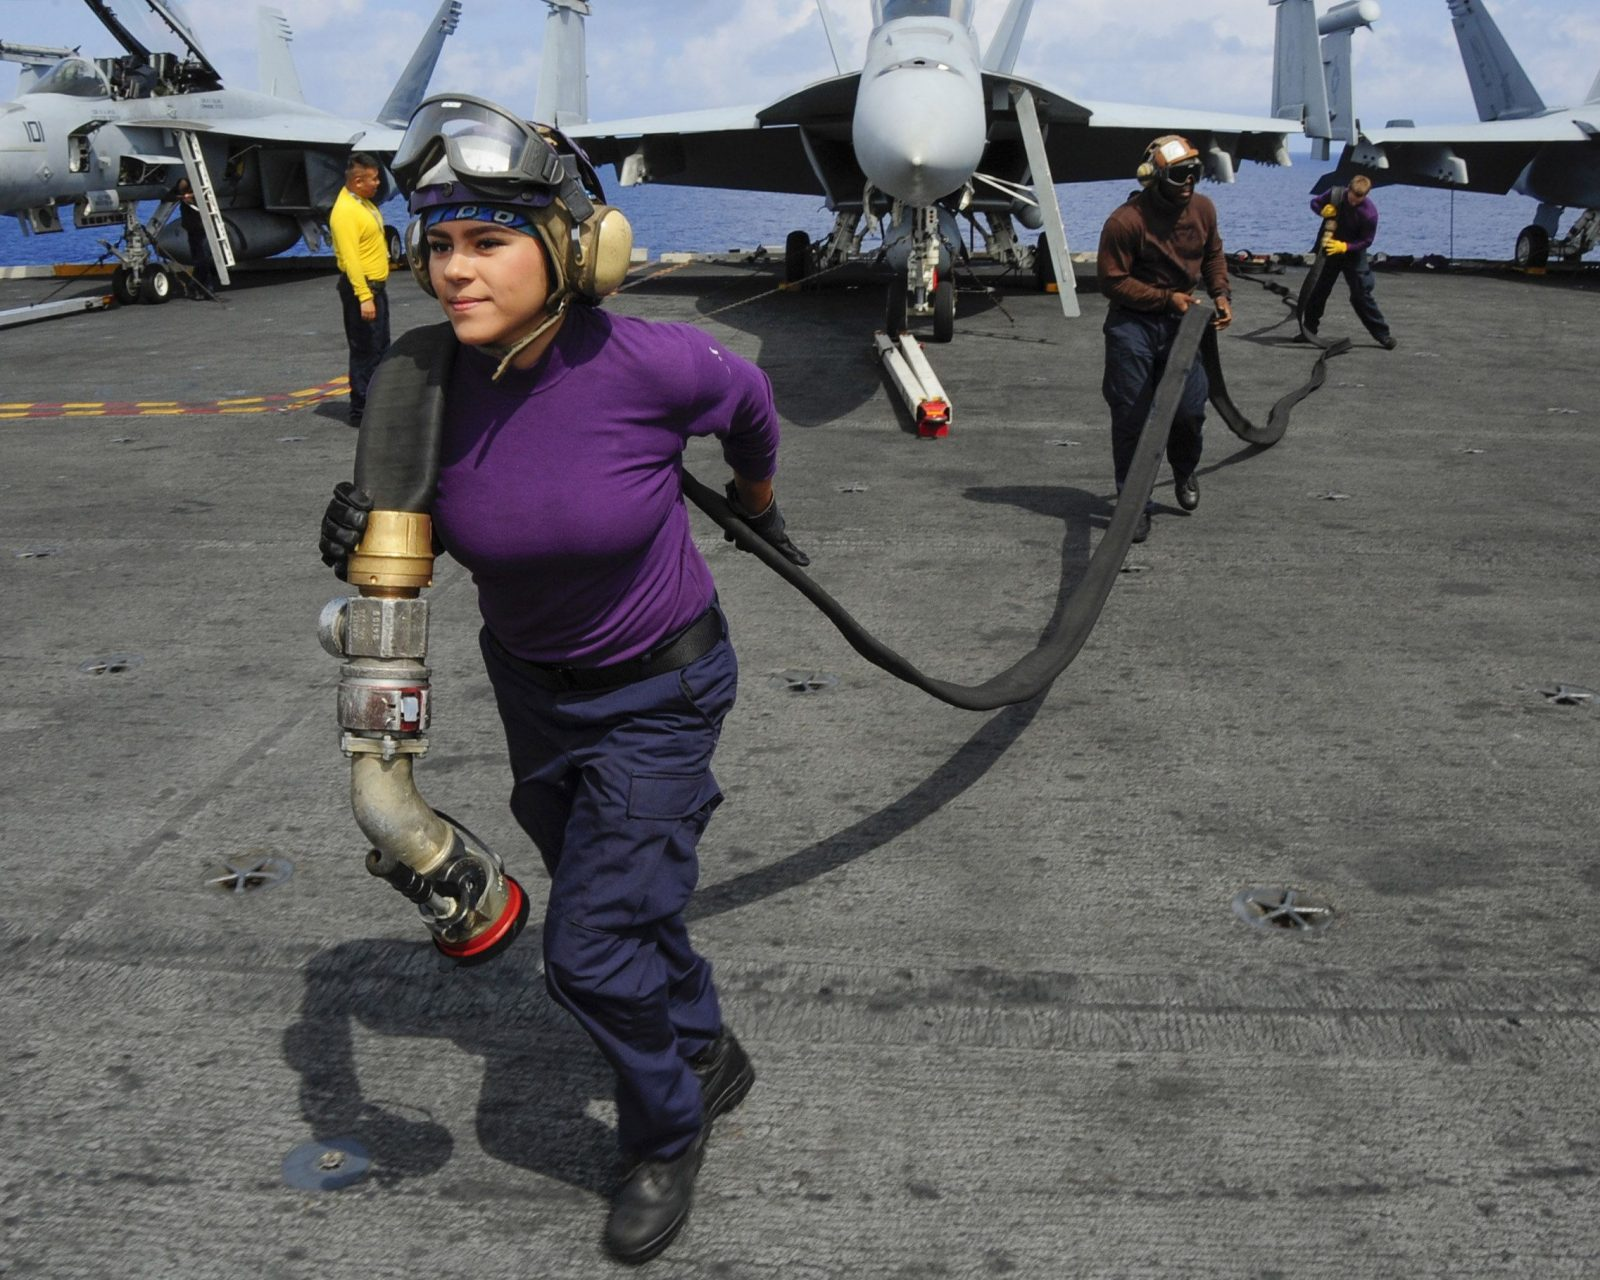 35 women made history by launching 35 aircraft from the flight deck of USS Theodore Roosevelt